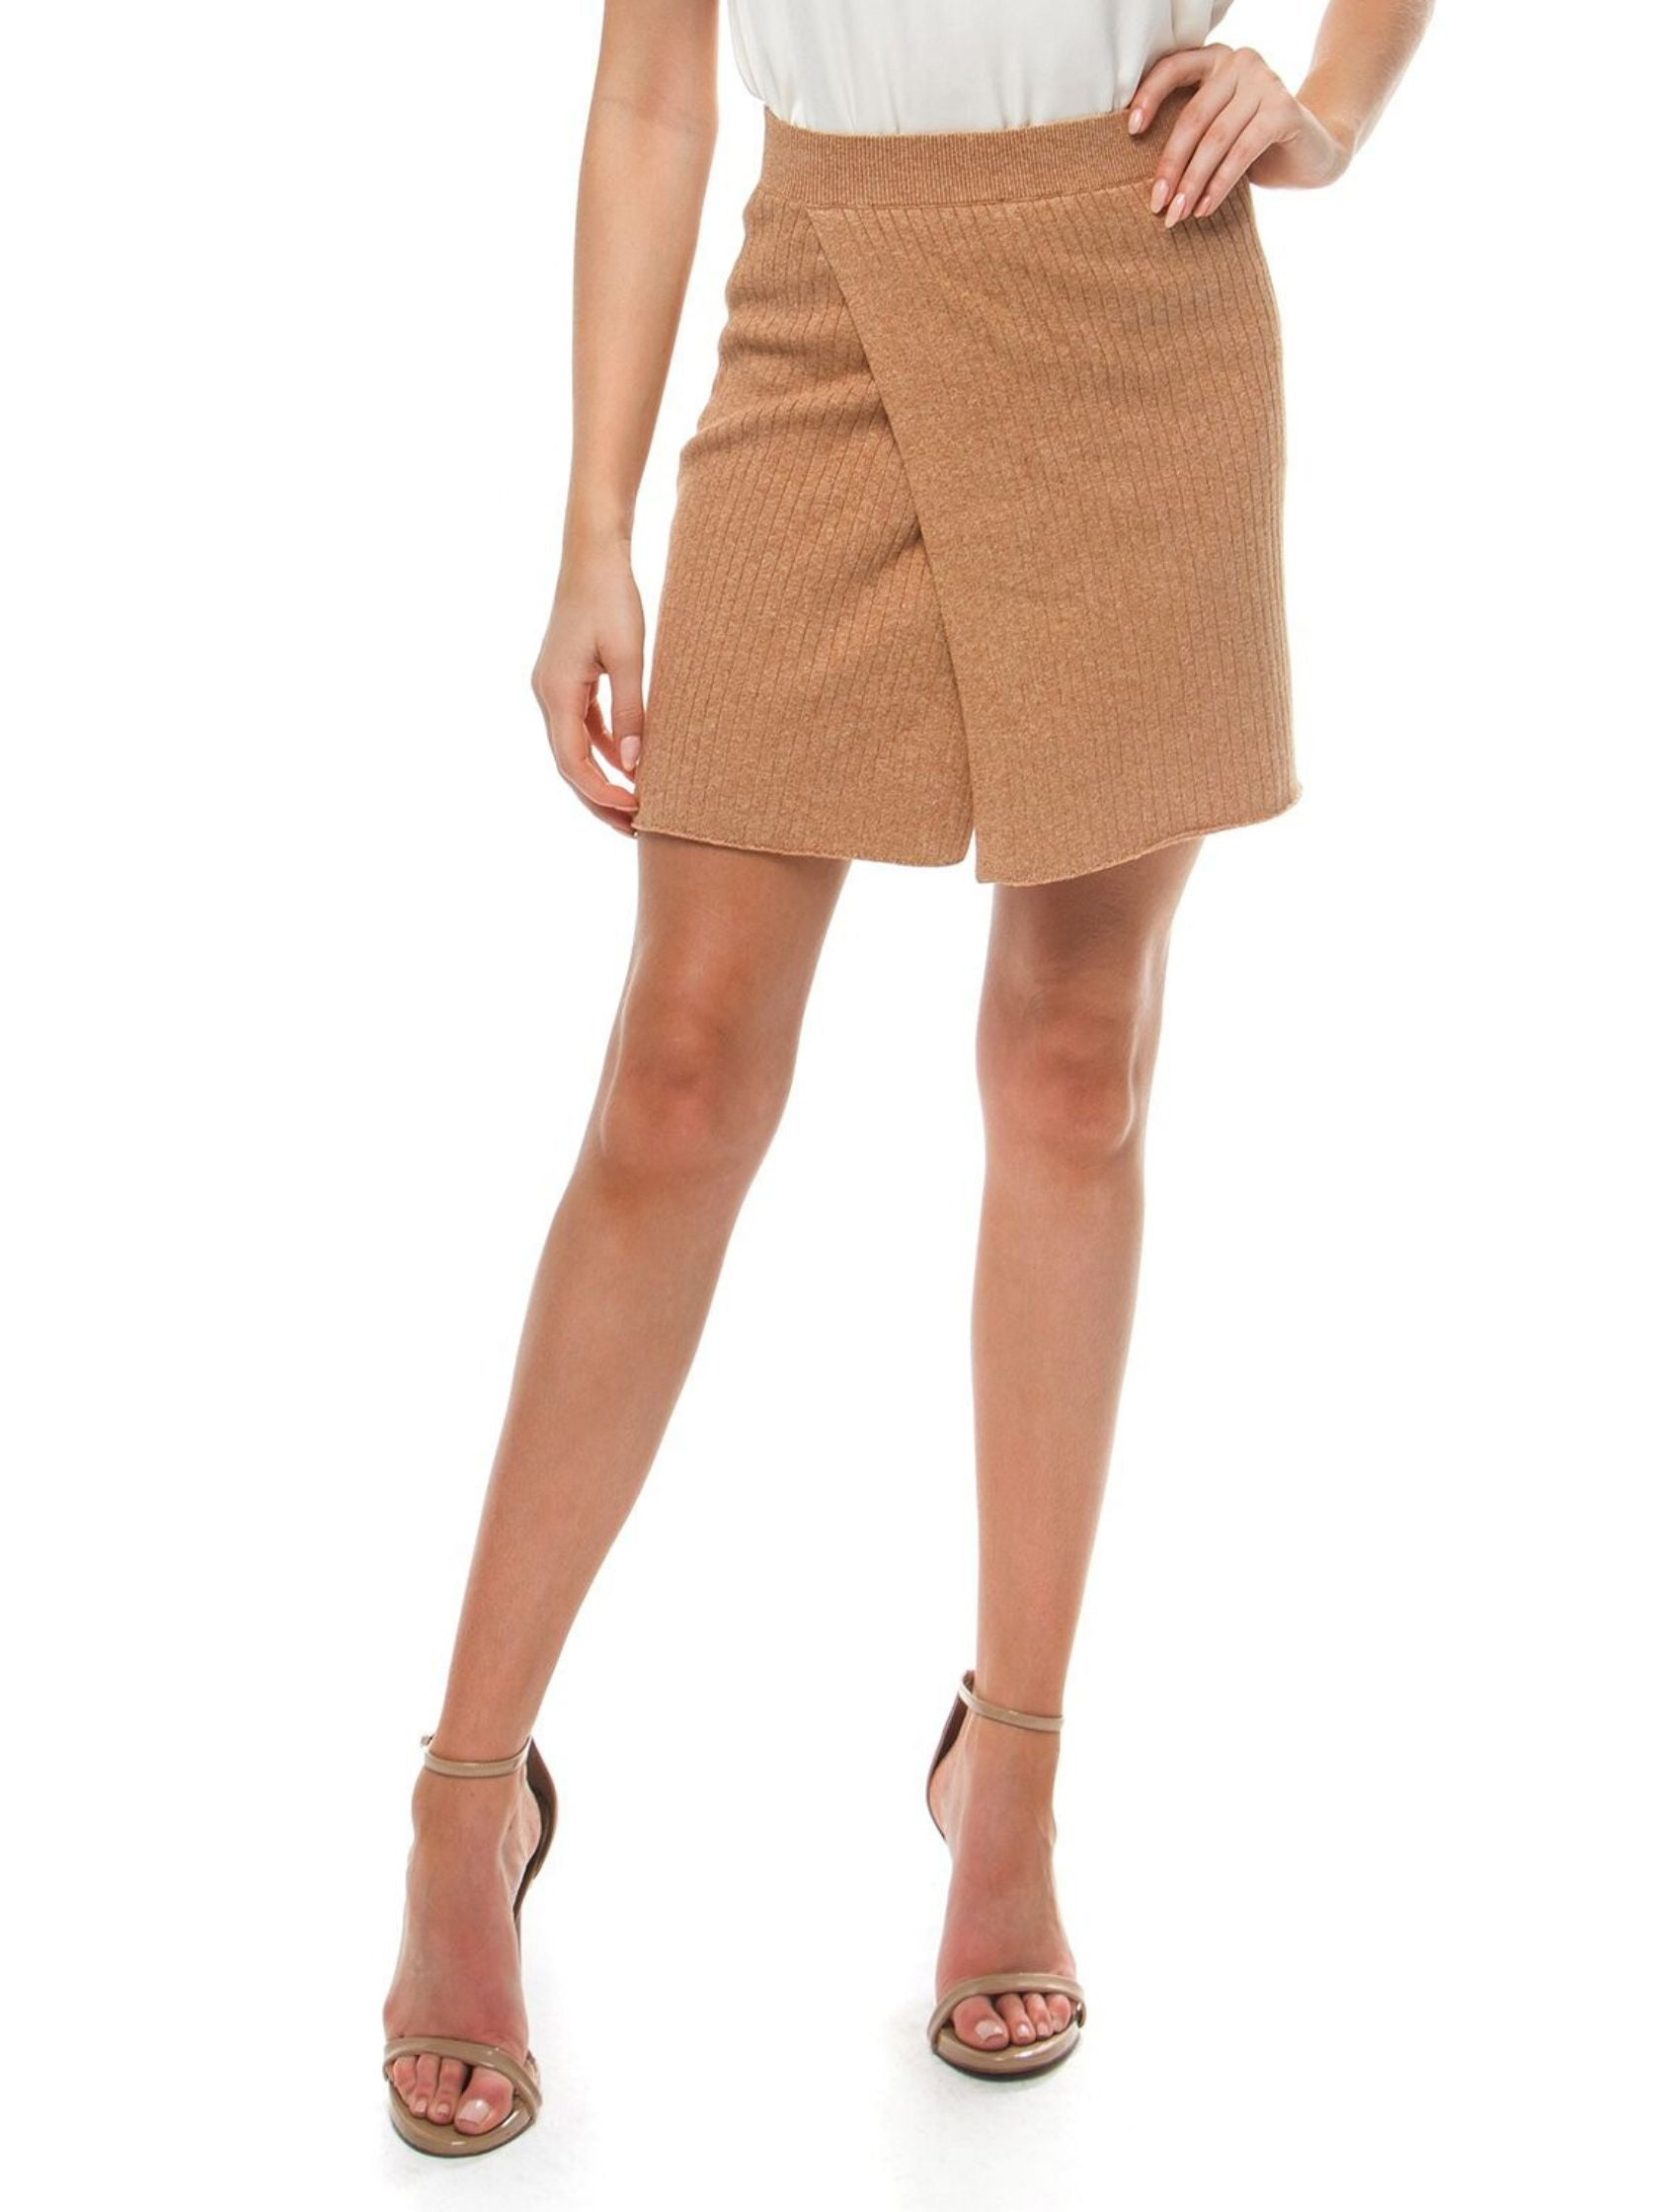 Woman wearing a skirt rental from Free People called Mod Wrap Skirt